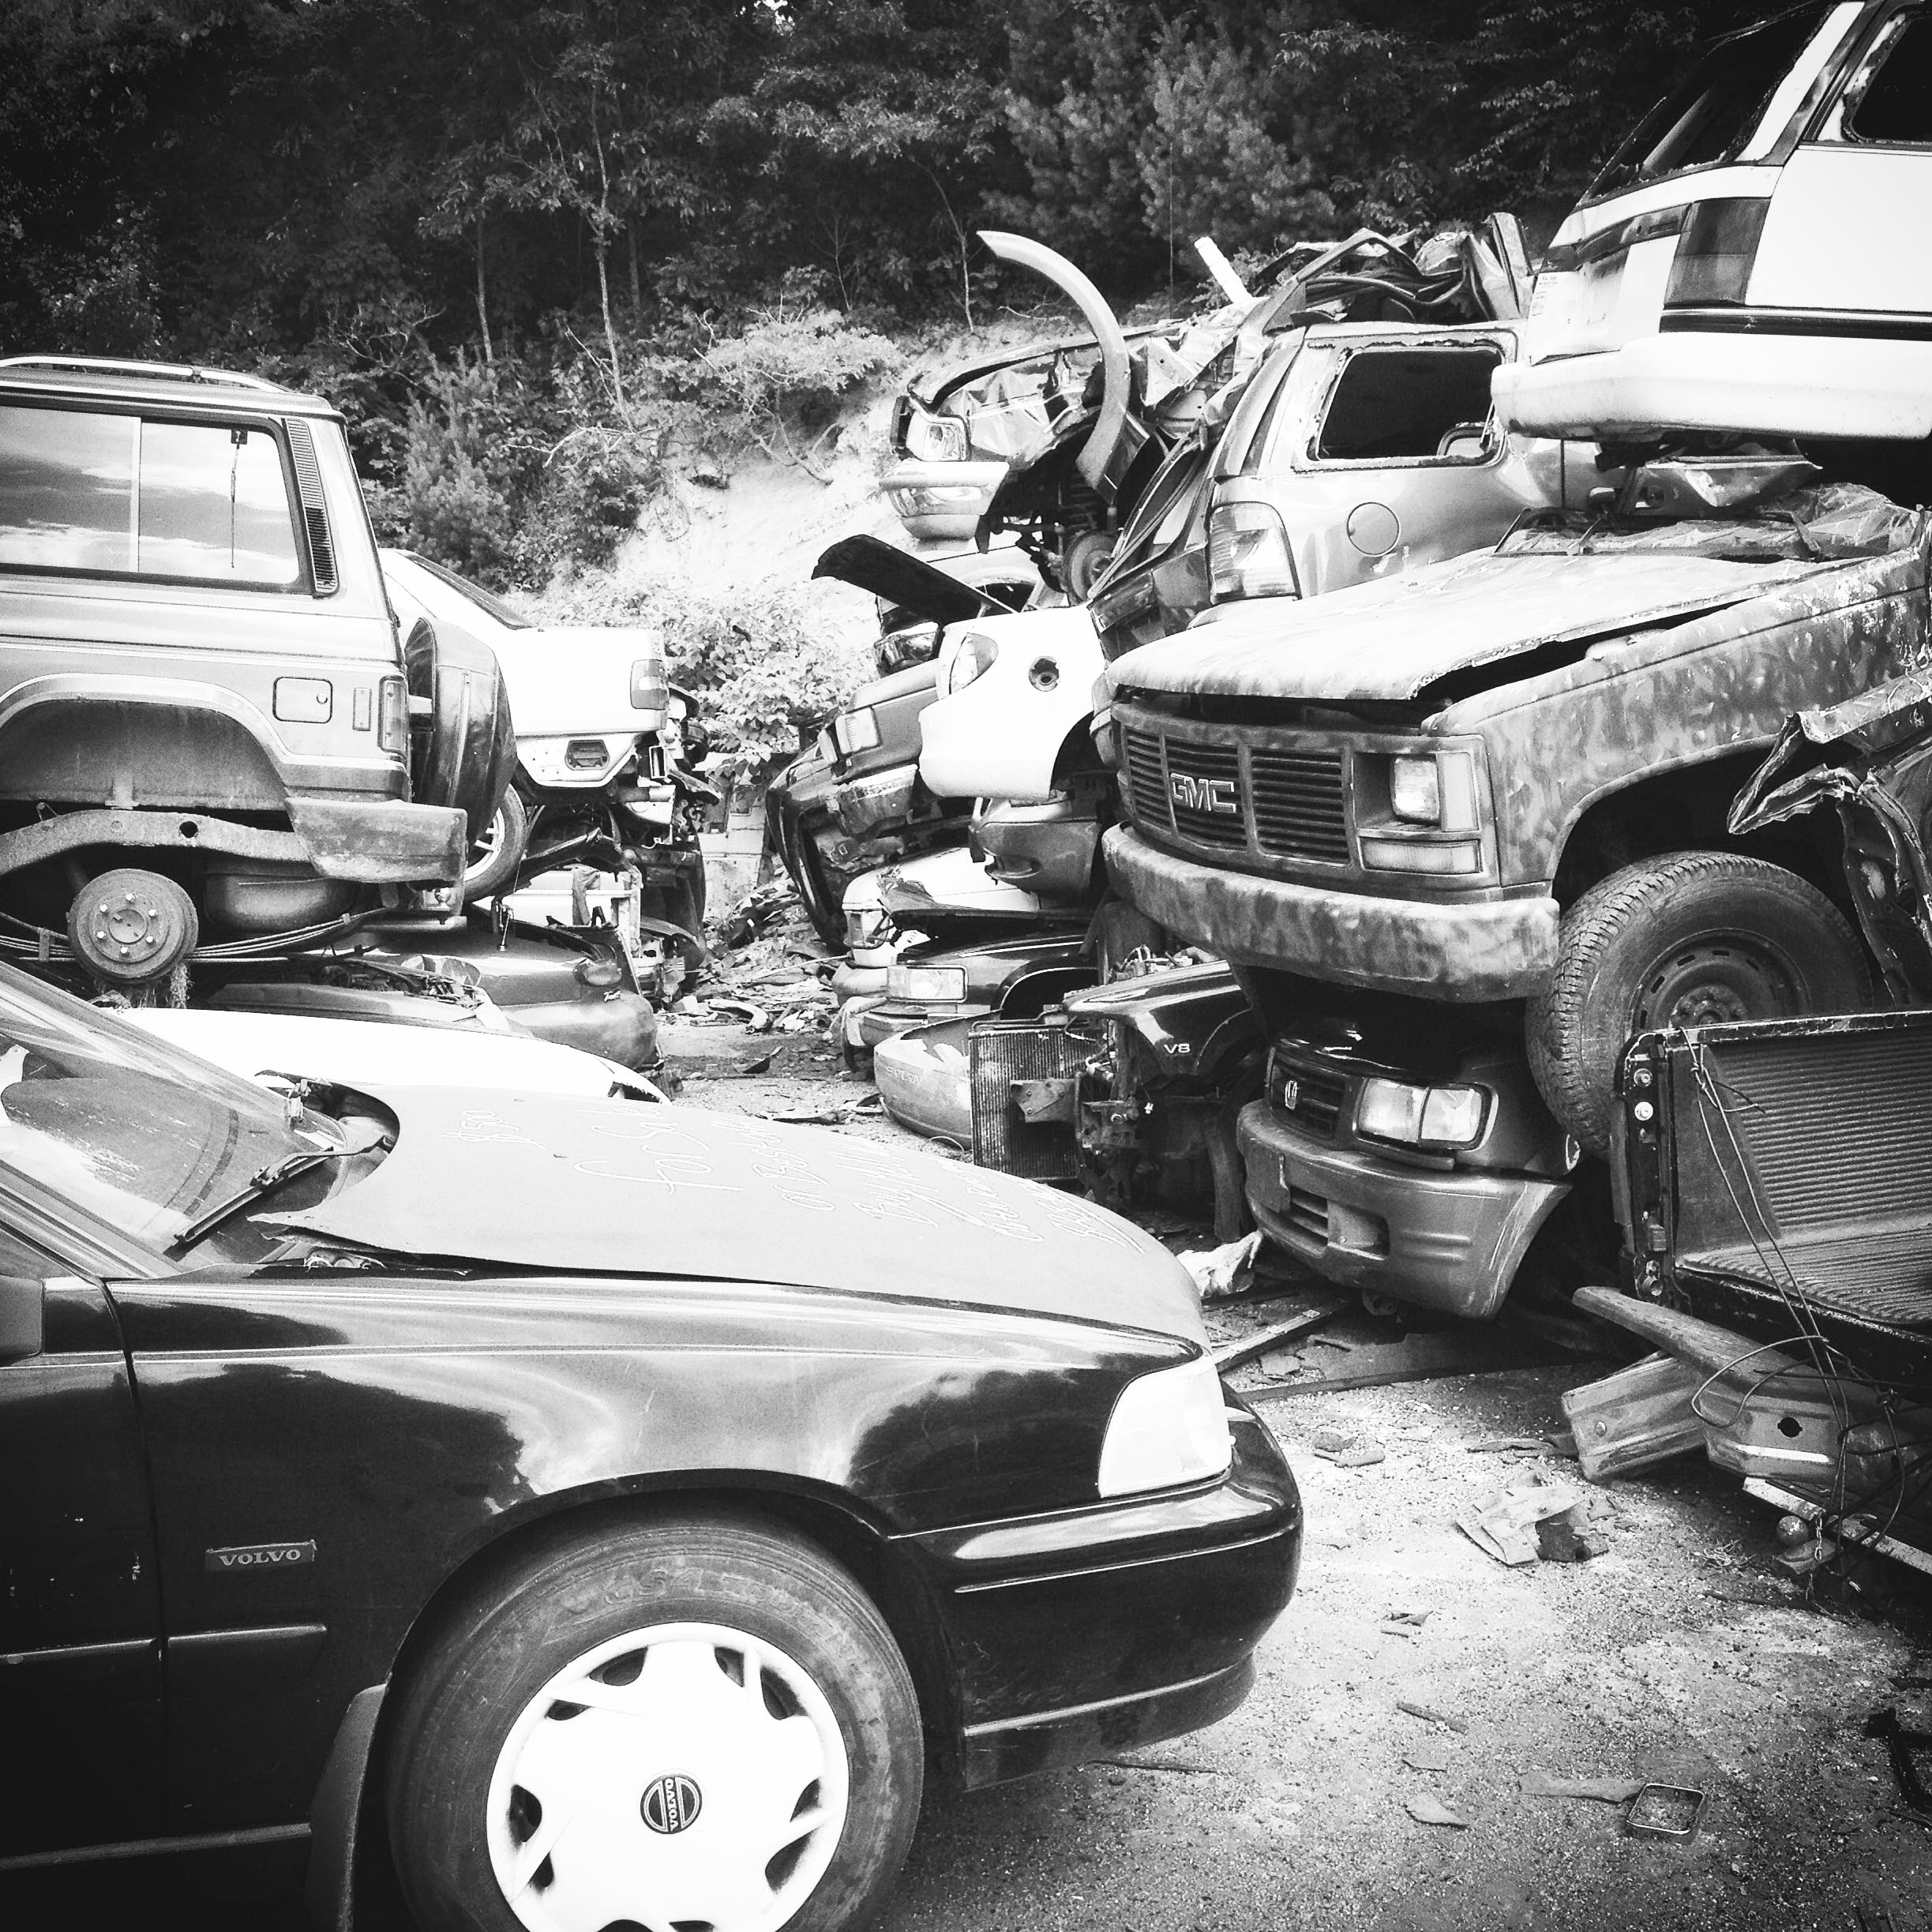 scrap yard cars b&w.jpg